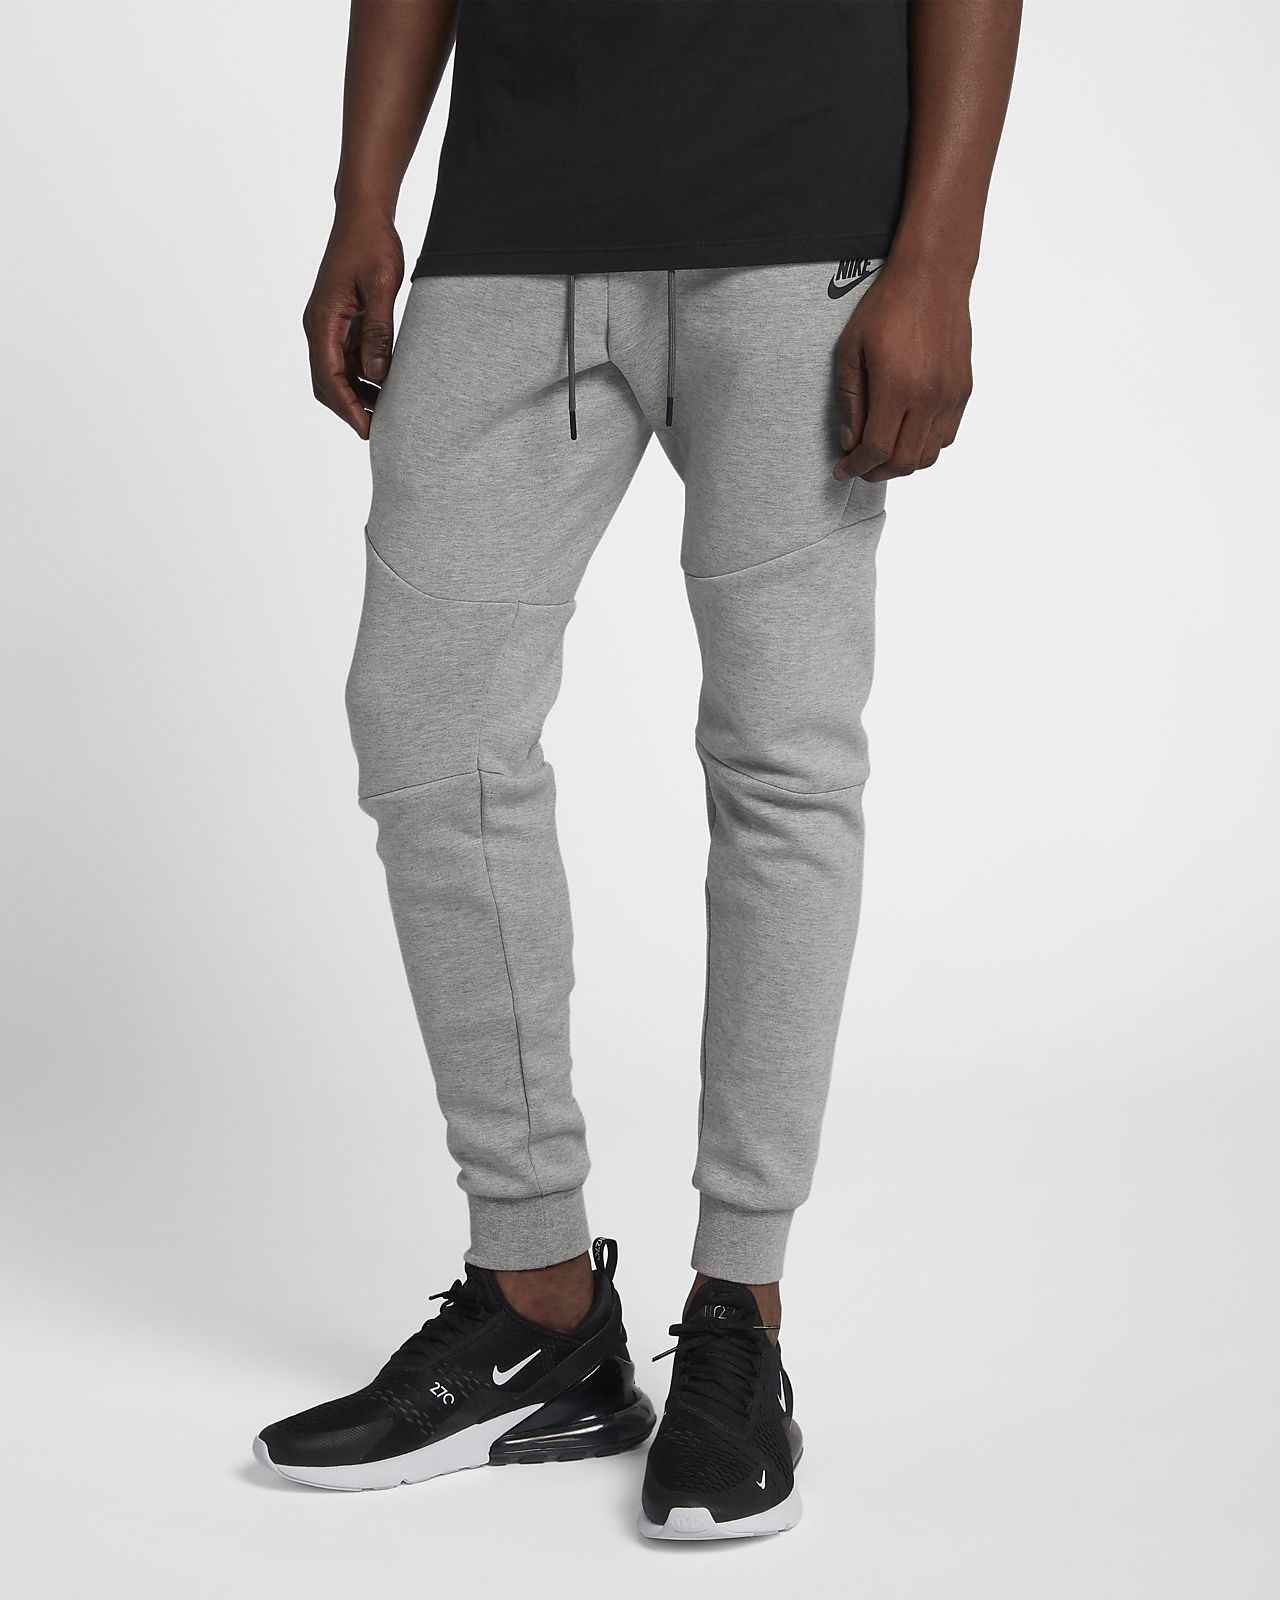 7d51a9756690 Nike Sportswear Tech Fleece Men s Joggers. Nike.com